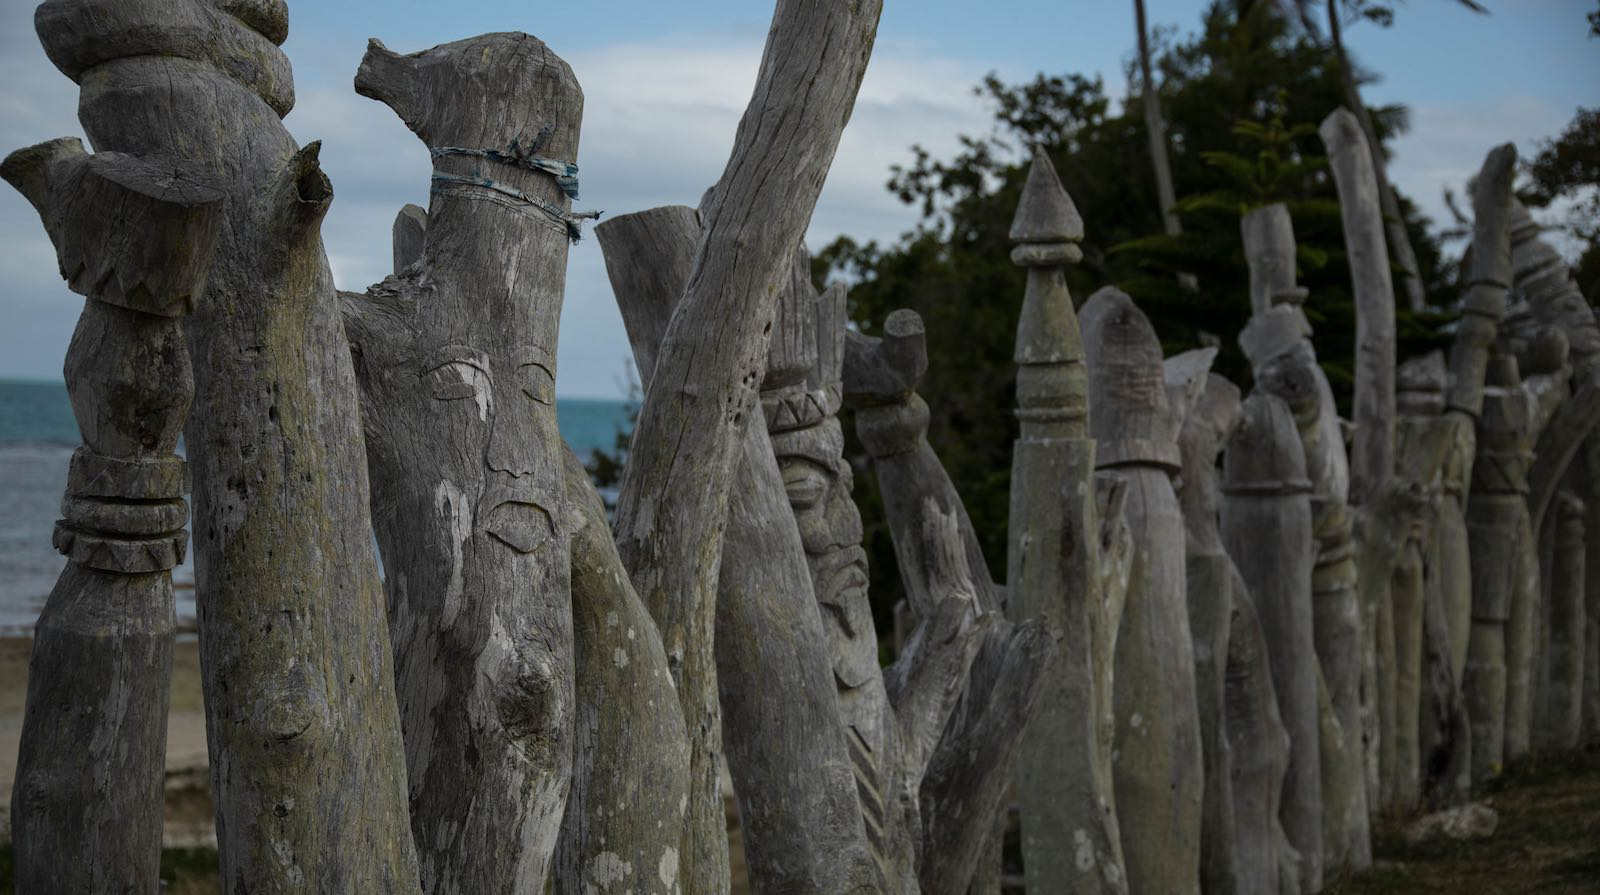 Sculptures at Vao, New Caledonia (Photo: Chris Hoare/Flickr)